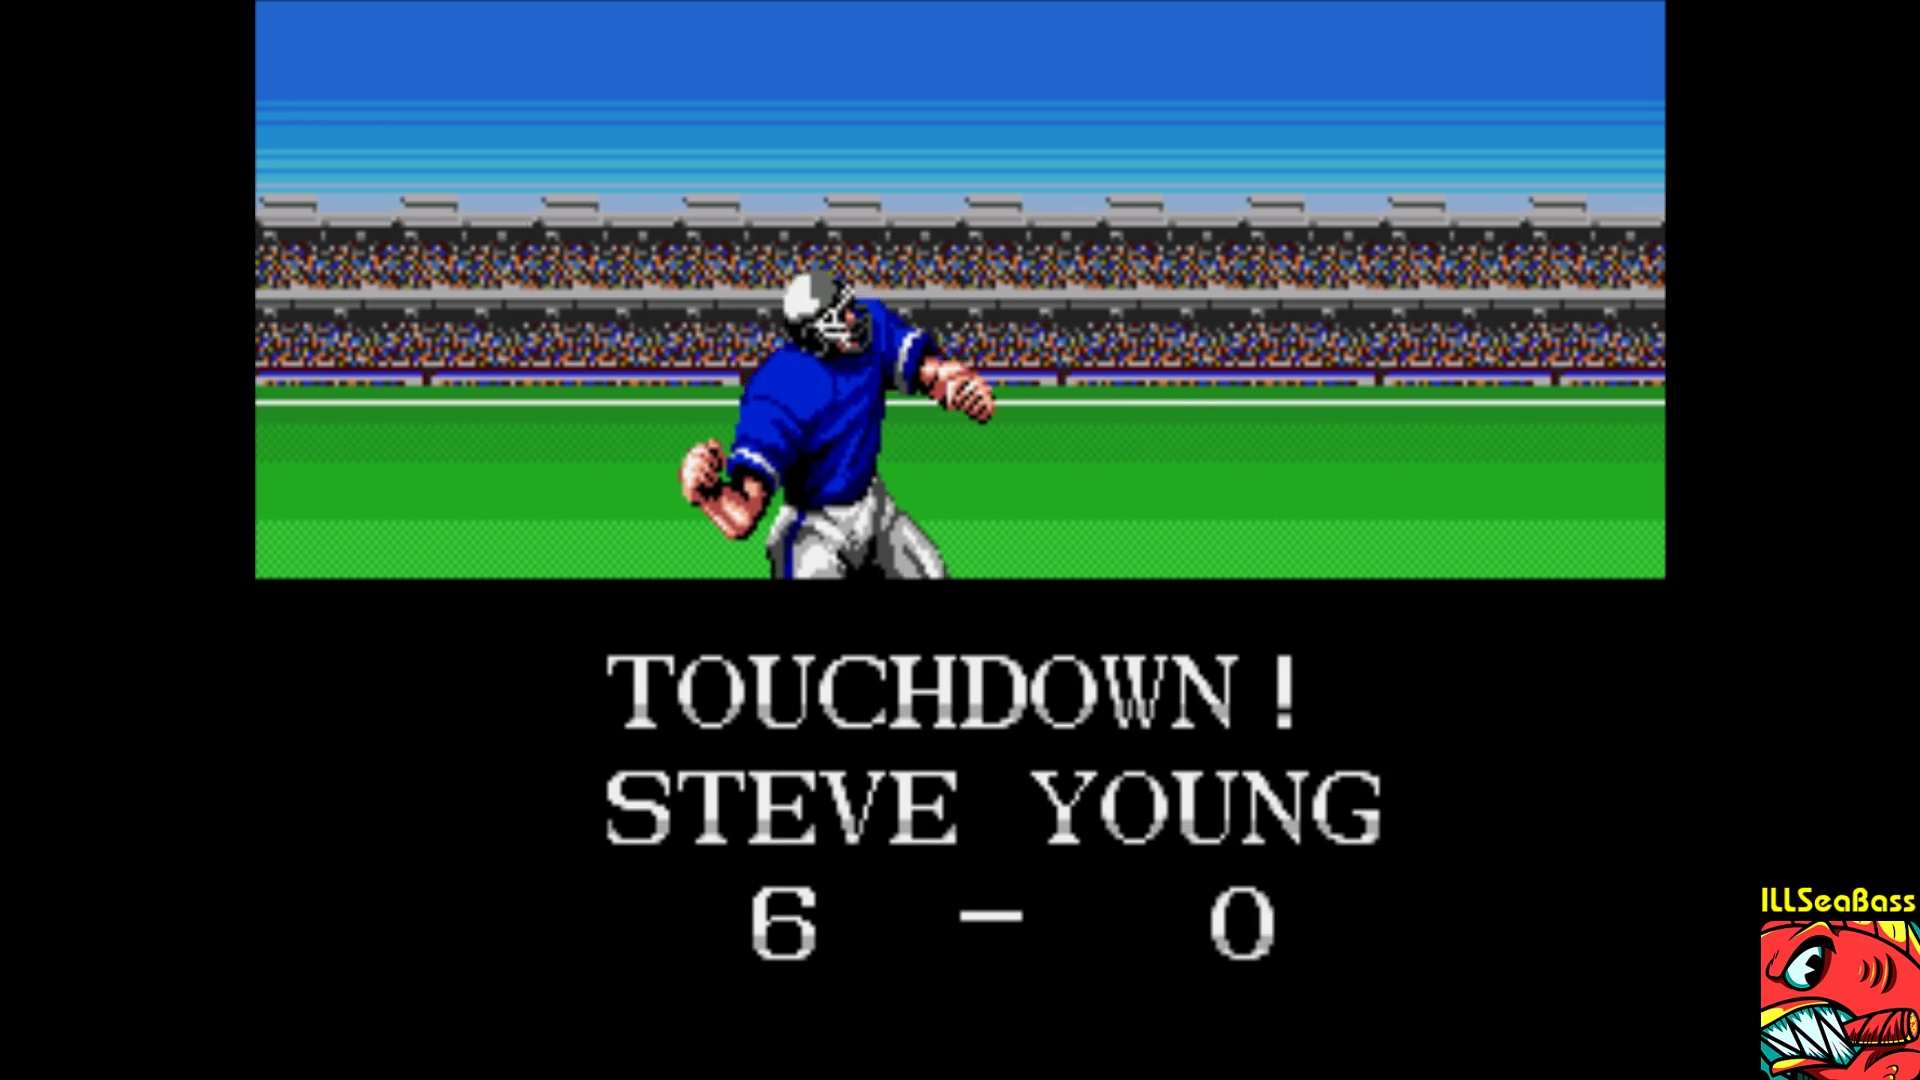 ILLSeaBass: Tecmo Super Bowl [Most Passing Yards] [Pro Bowl] (Sega Genesis / MegaDrive Emulated) 518 points on 2018-01-29 00:23:46